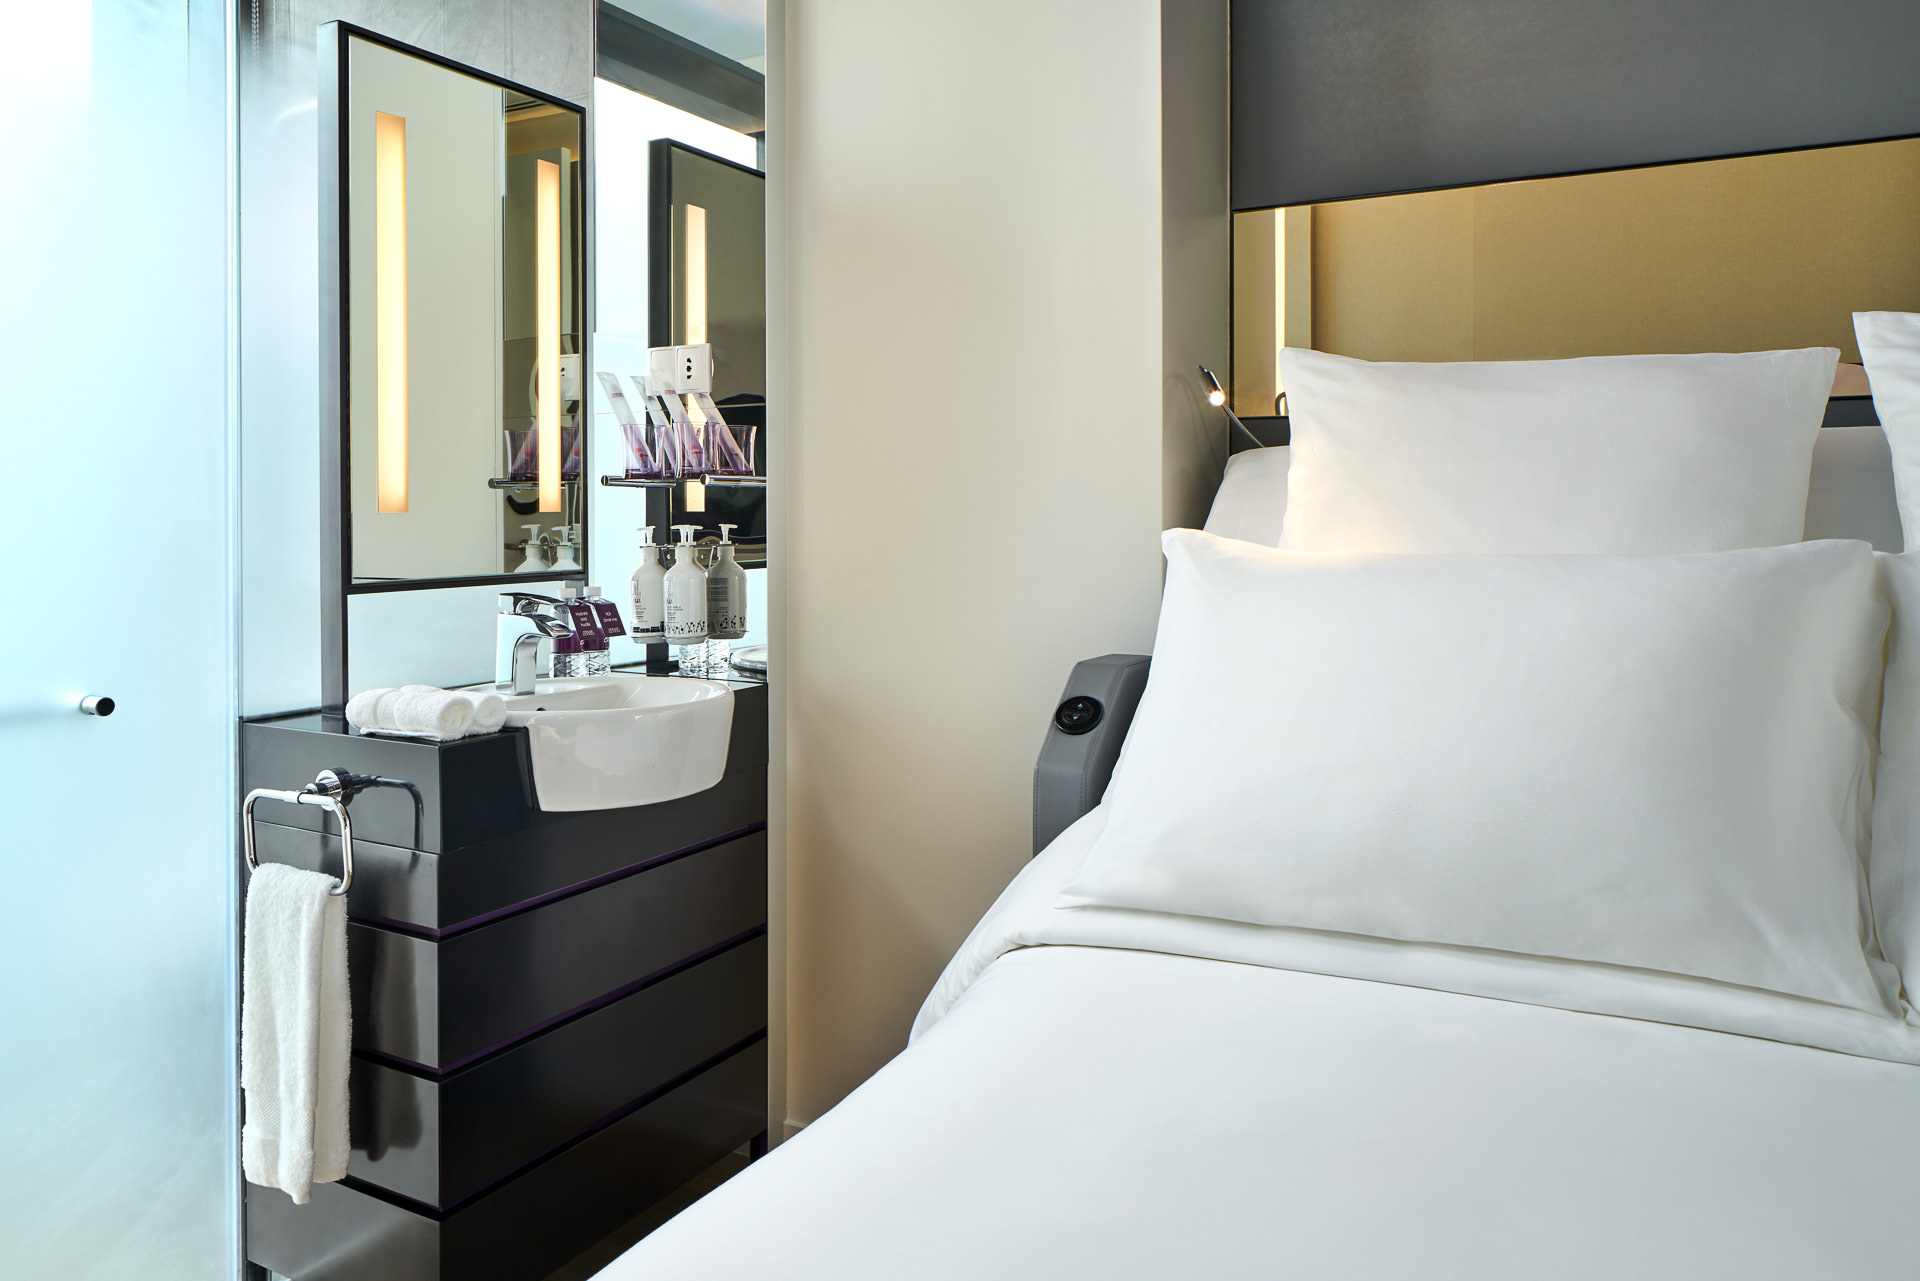 Interior photography at yotel in singapore close up of bed and bathroom setup with bathroom mirror and sink with accessories